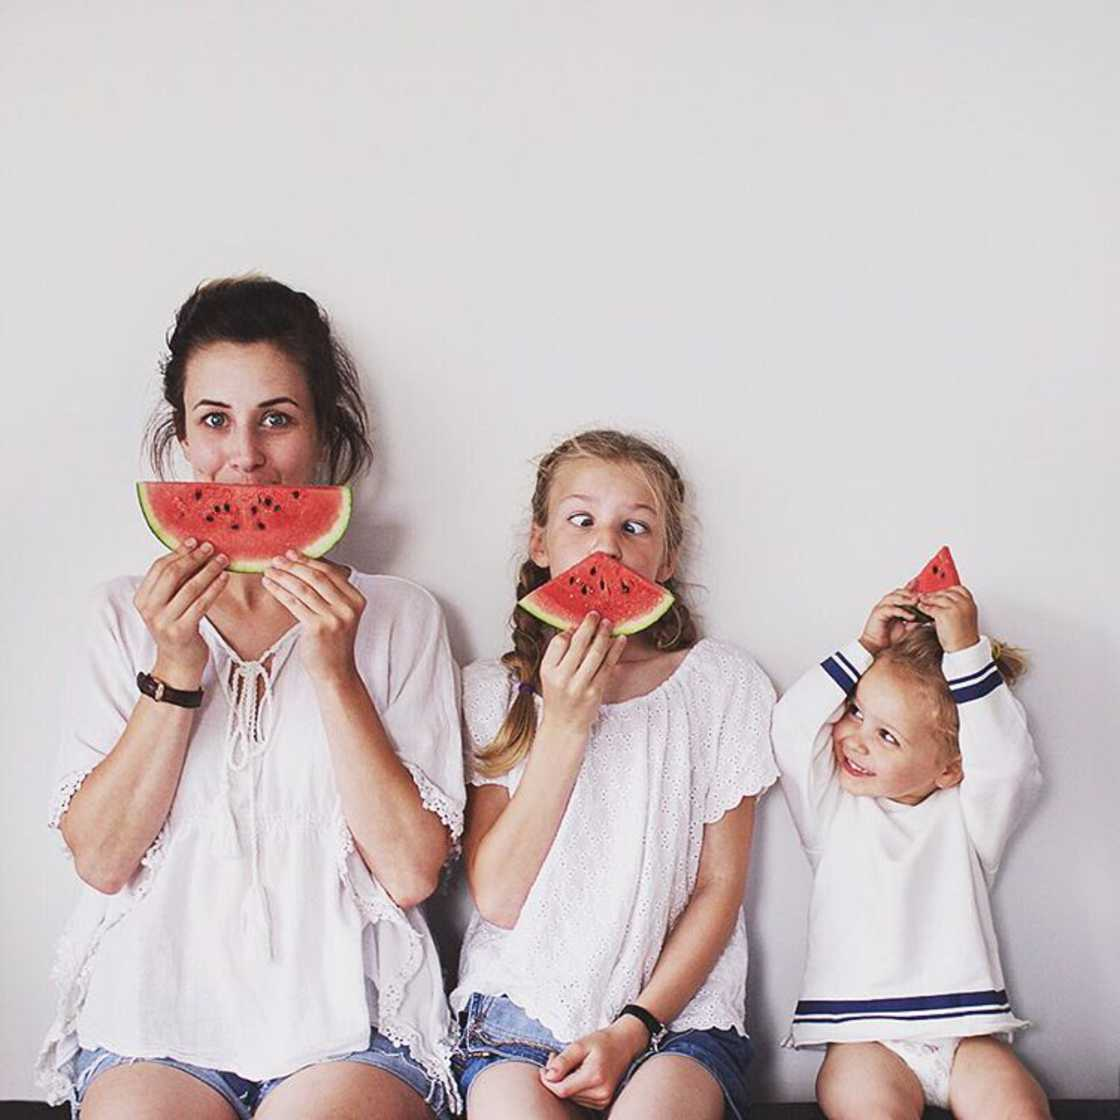 Mom and Girls - She poses with her two little girls in matching clothes